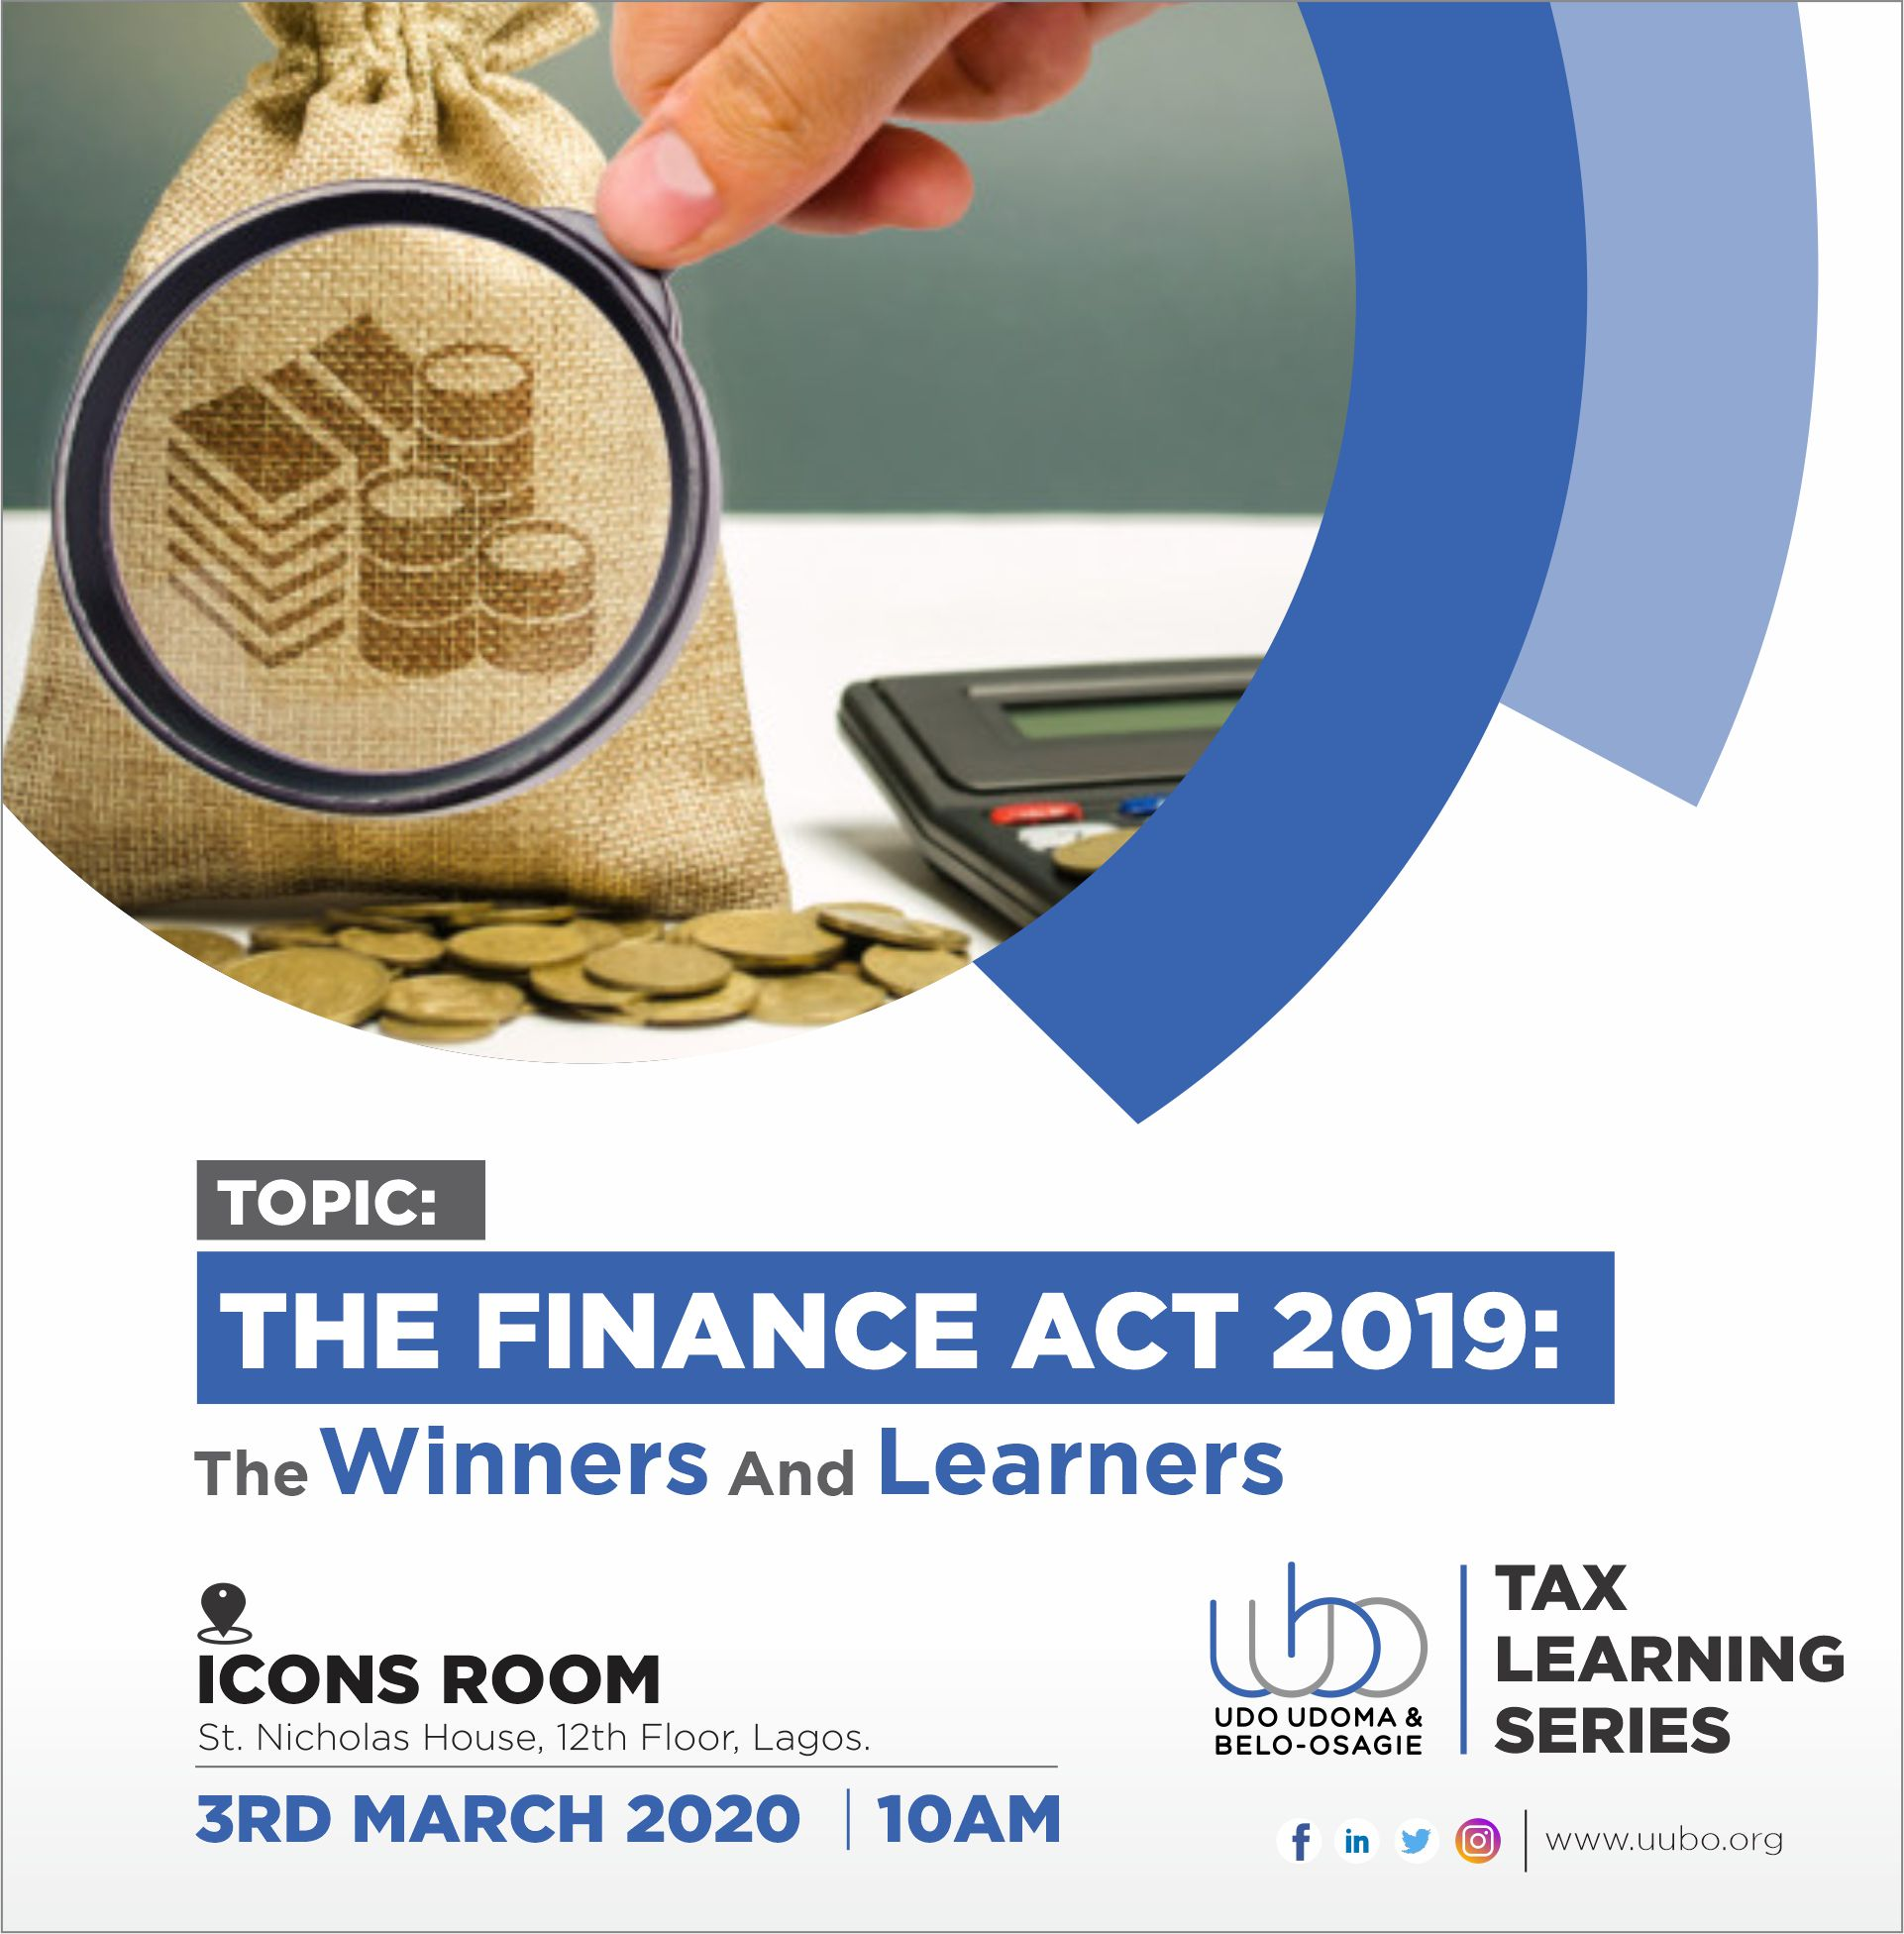 THE FINANCE ACT 2019: WINNERS & LEARNERS